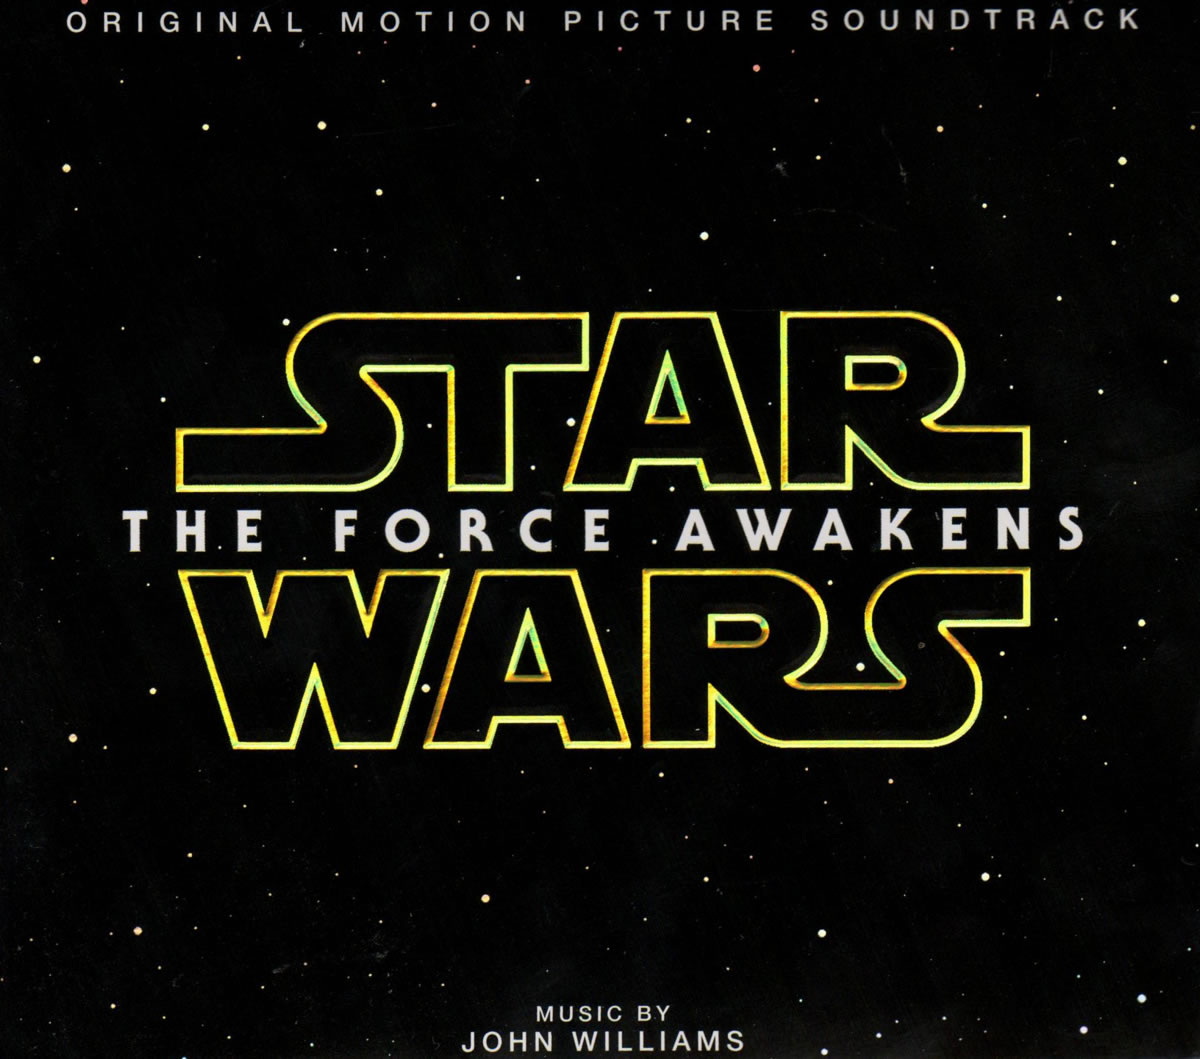 """""""Star Wars - The Force Awakens Original Motion Picture Soundtrack"""" by John Williams."""